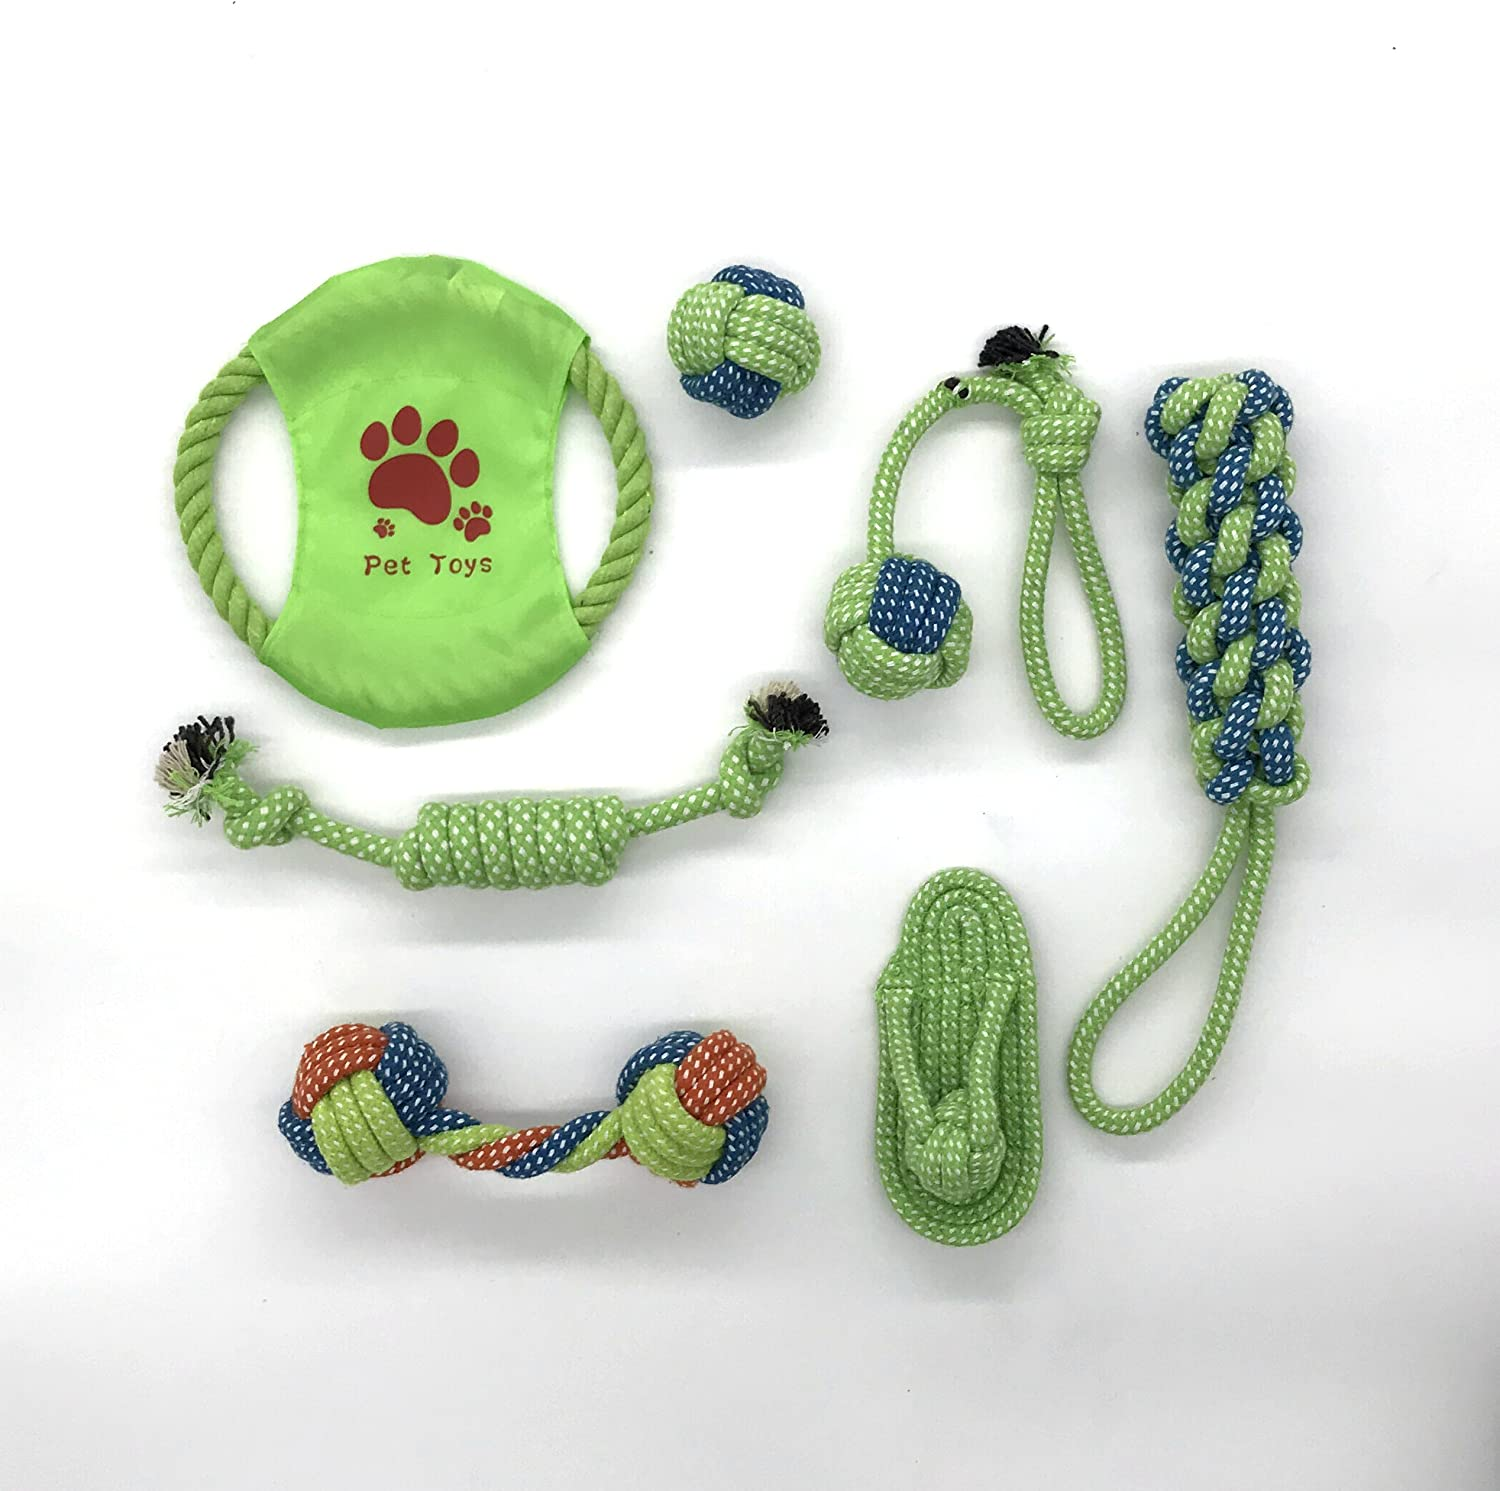 Mew Dog Toy Rope Play Set,Washable Cotton Tug Chews with Tennis Ball & Braided Frisbee for Small to Large Dogs (Set of 7)